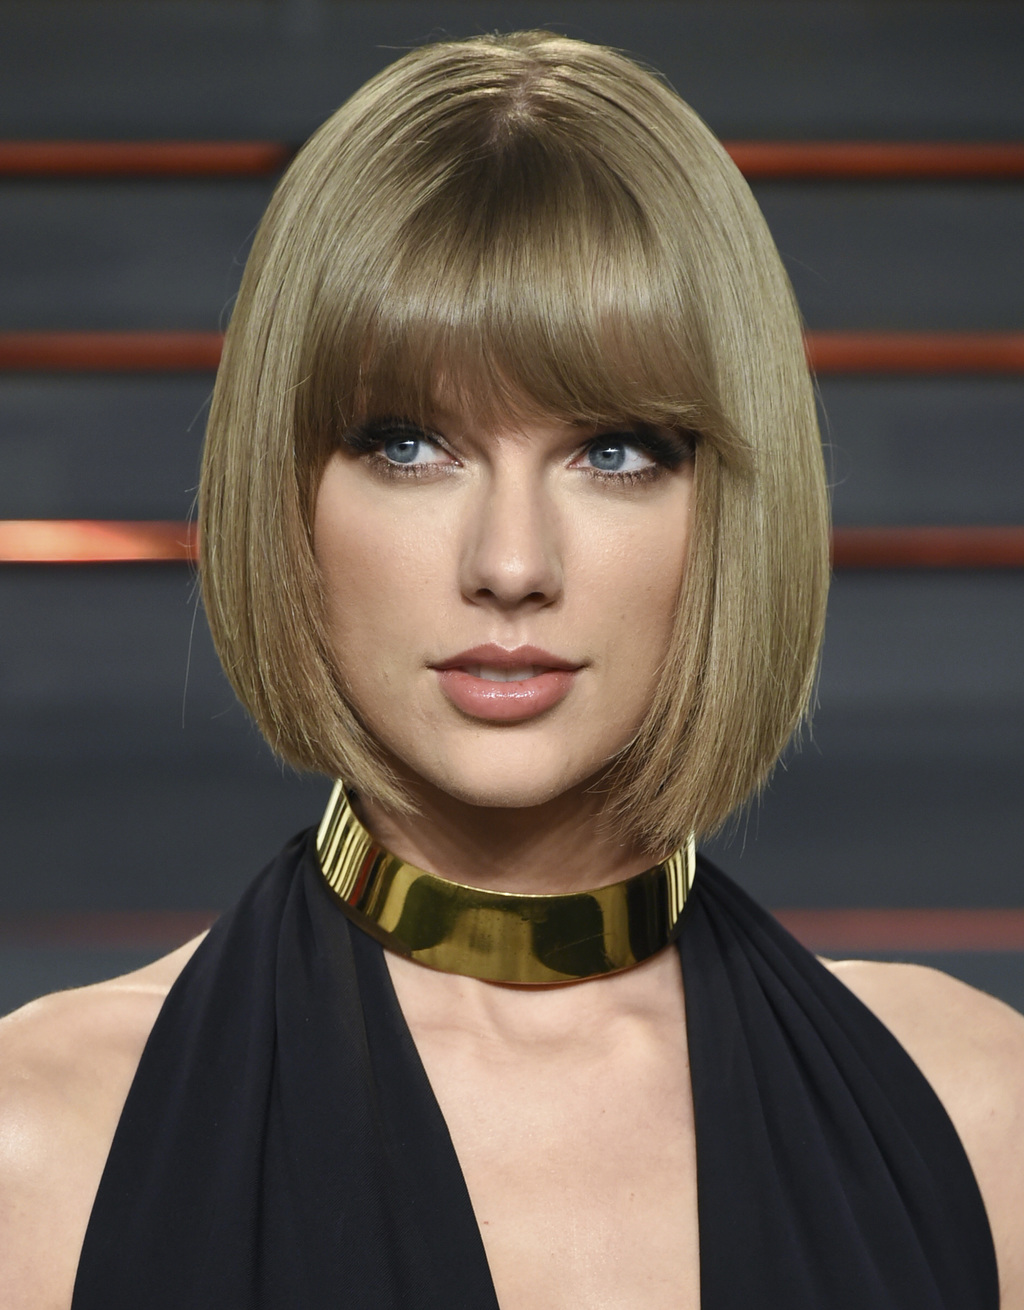 FILE - In this Feb. 28, 2016 file photo, singer Taylor Swift attends the Vanity Fair Fair Oscar Party in Beverly Hills, Calif. The trial of a lawsuit ...